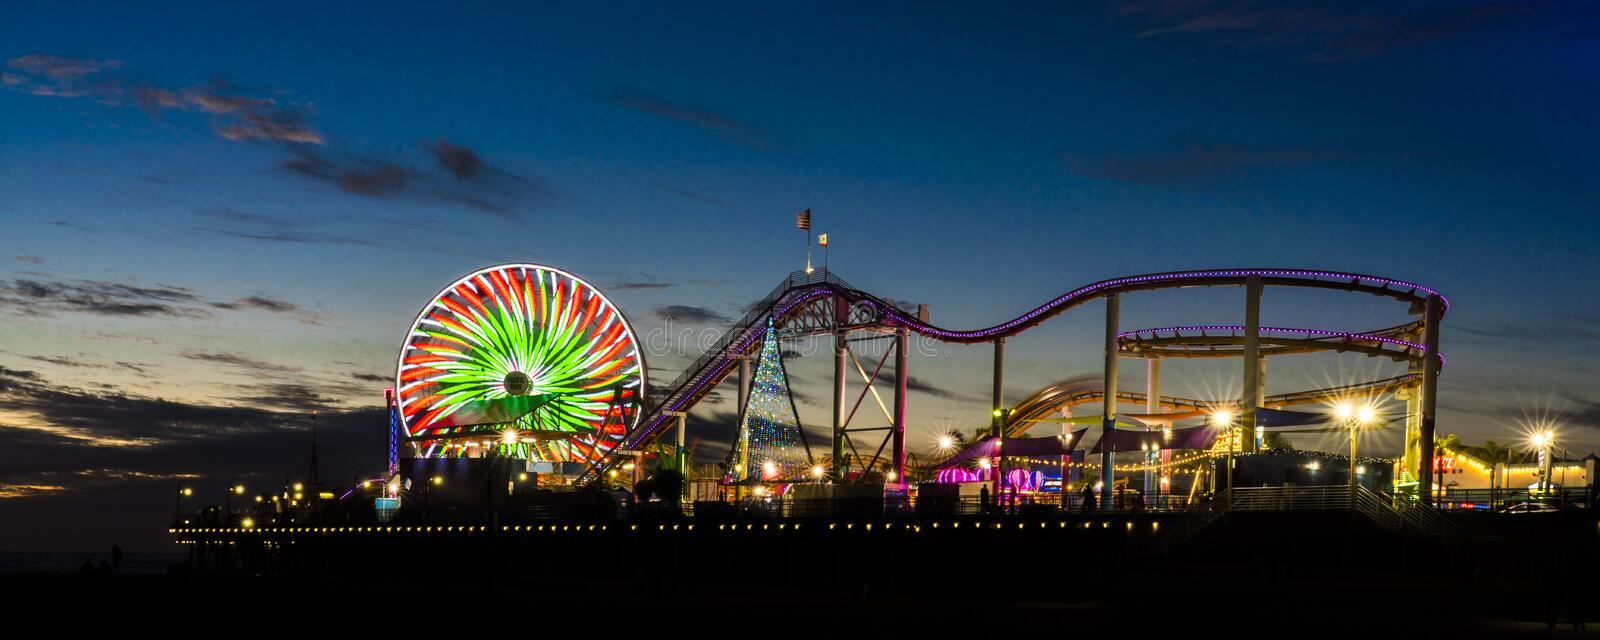 DECEMBER 20, 2018 - SANTA MONICA, CALIFORNIA, USA - Santa Monica Pier with Ferris Wheel and neon lights at sunset, Santa Monica, C. A stock image